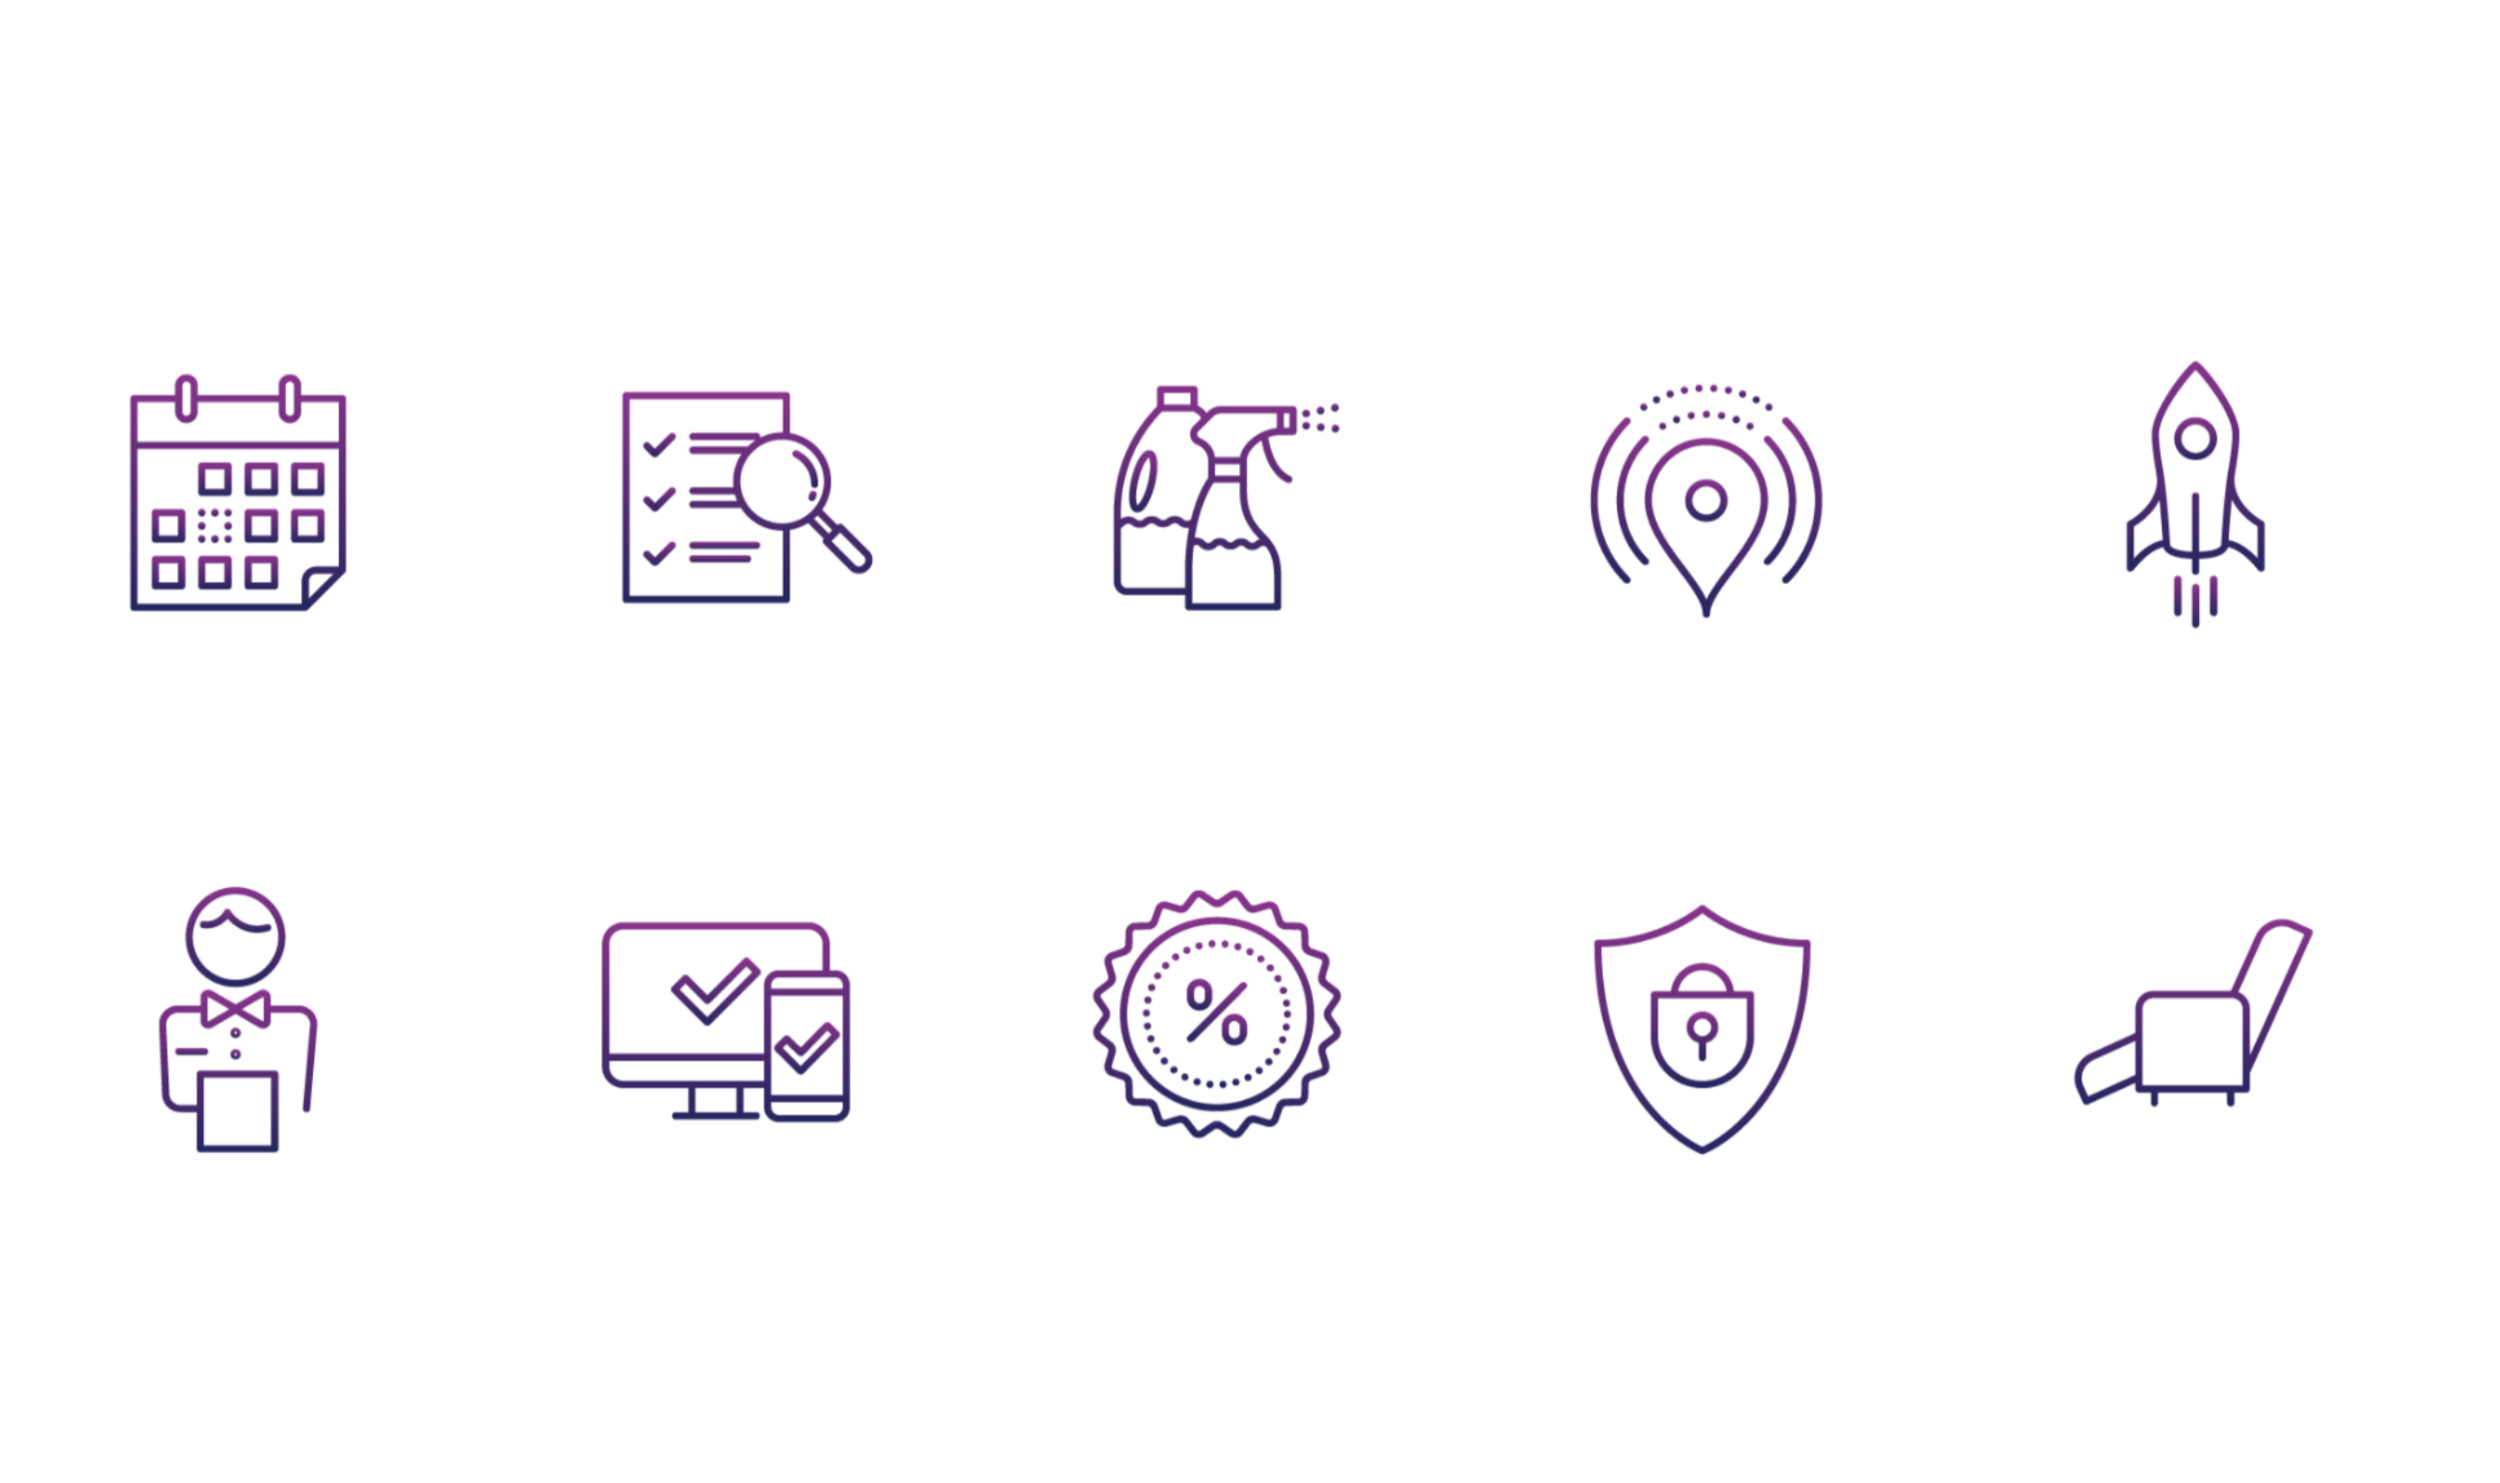 Iconography - Created clean, new icons to help visually convey the value prop and to ease navigation through the booking process.